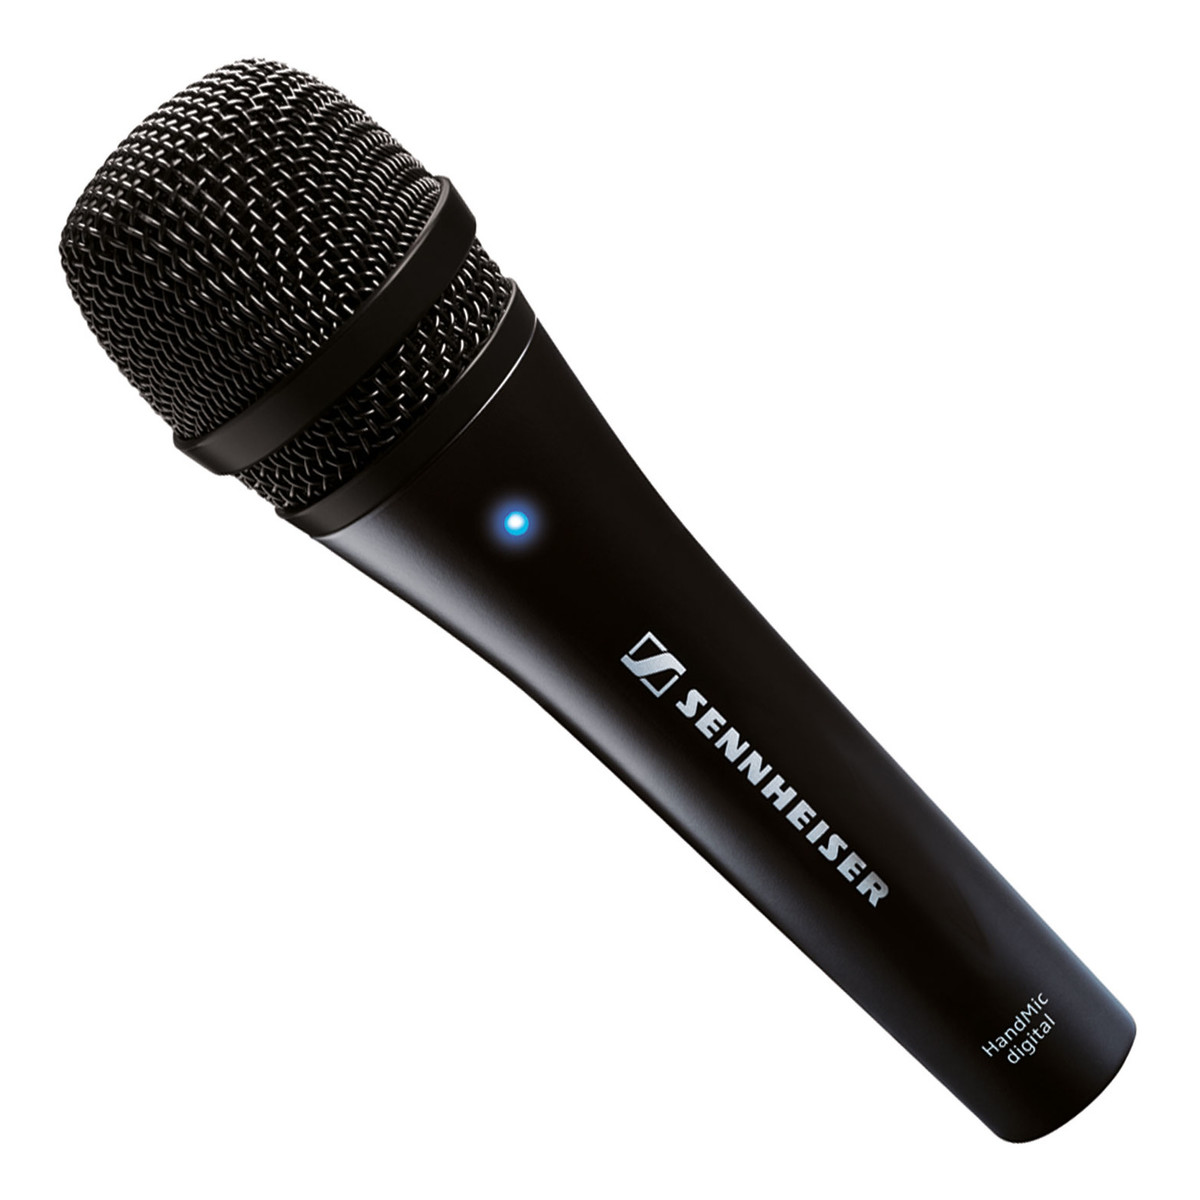 sennheiser handmic digital dynamic microphone b stock at gear4music. Black Bedroom Furniture Sets. Home Design Ideas